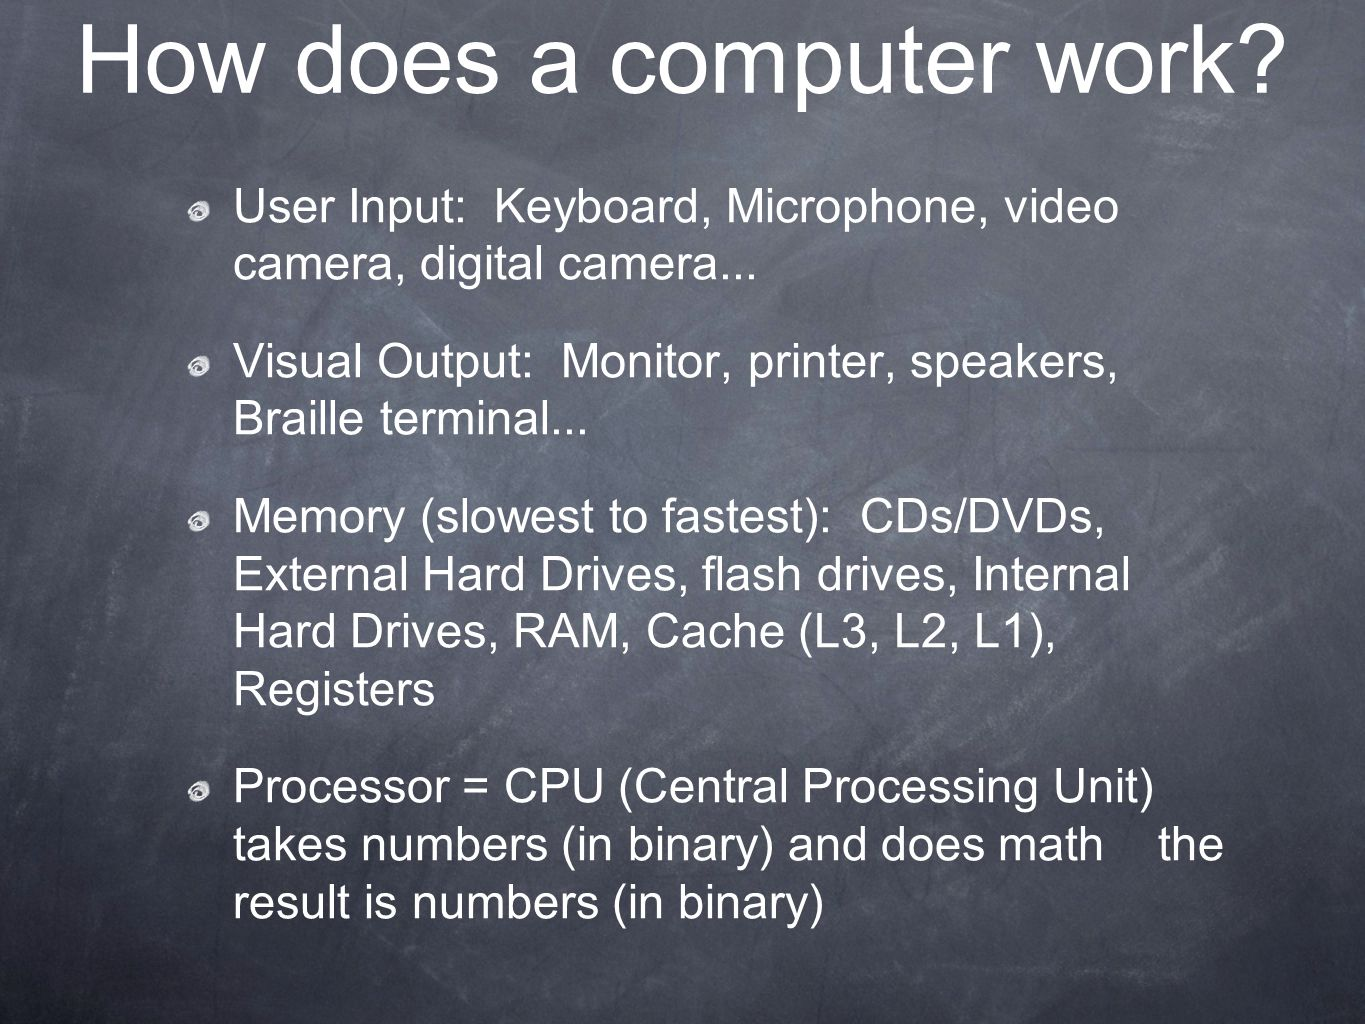 How does a computer work. User Input: Keyboard, Microphone, video camera, digital camera...